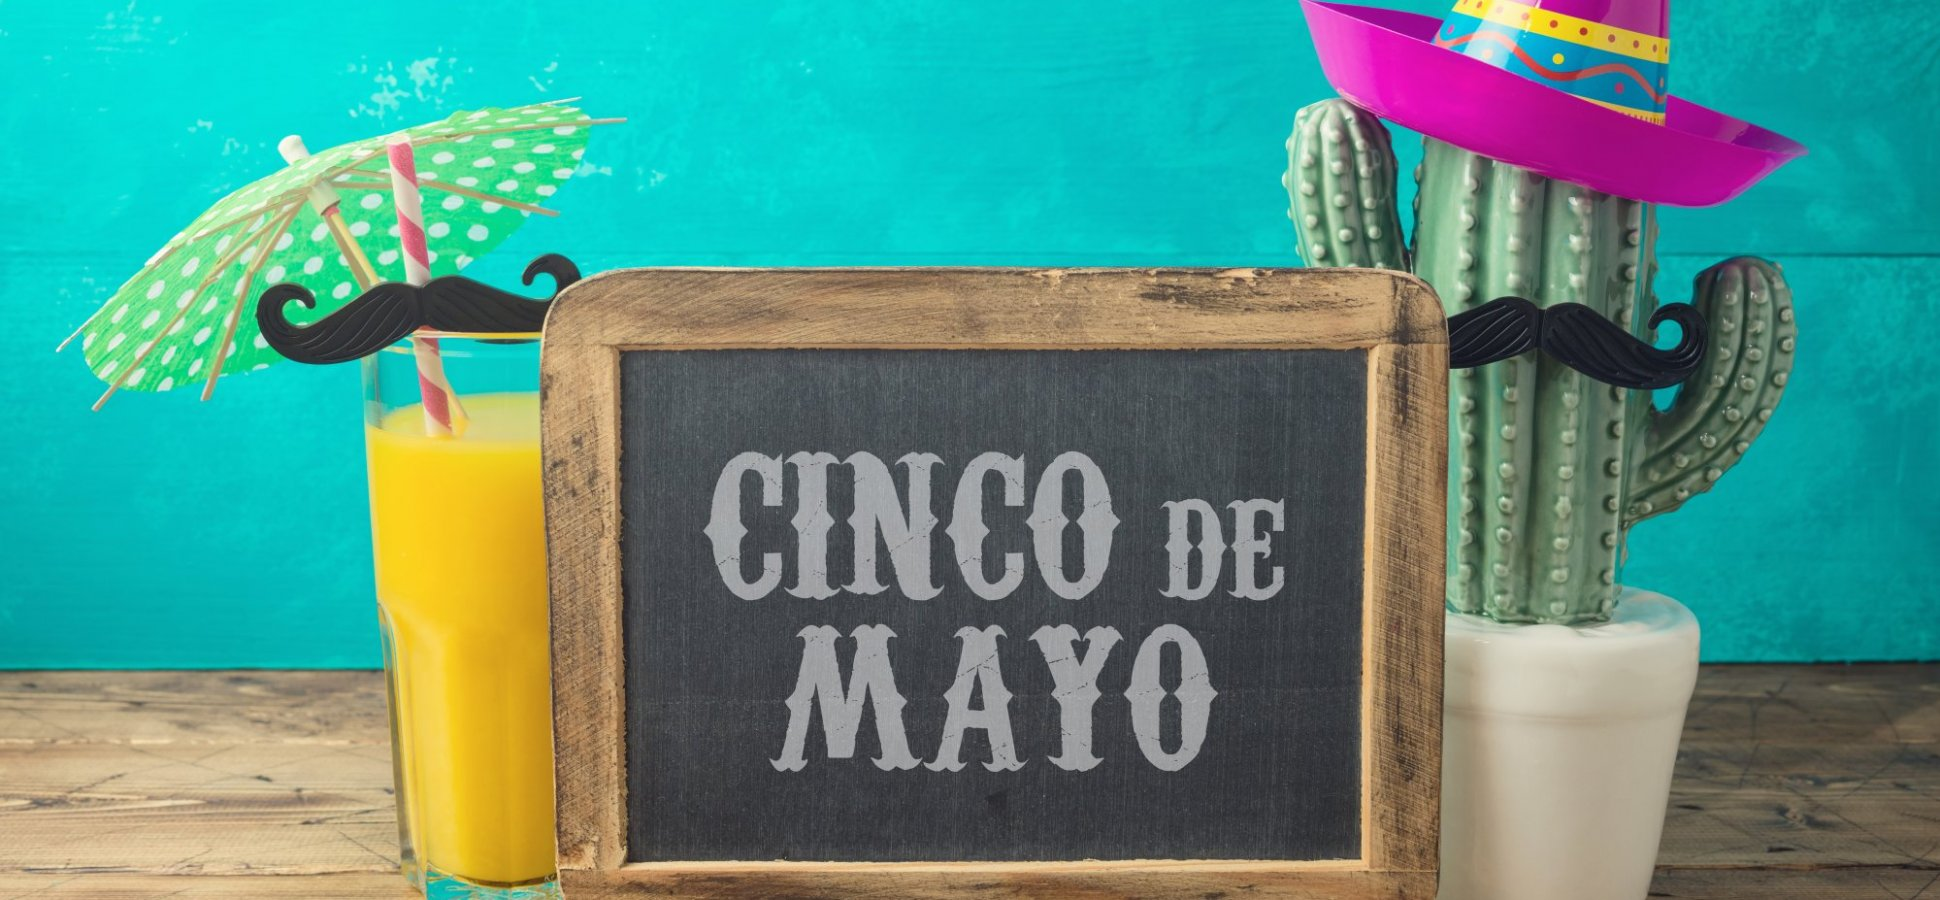 Smart Marketing: These Bars Are Giving Their Cinco de Mayo Celebrations Some Personality